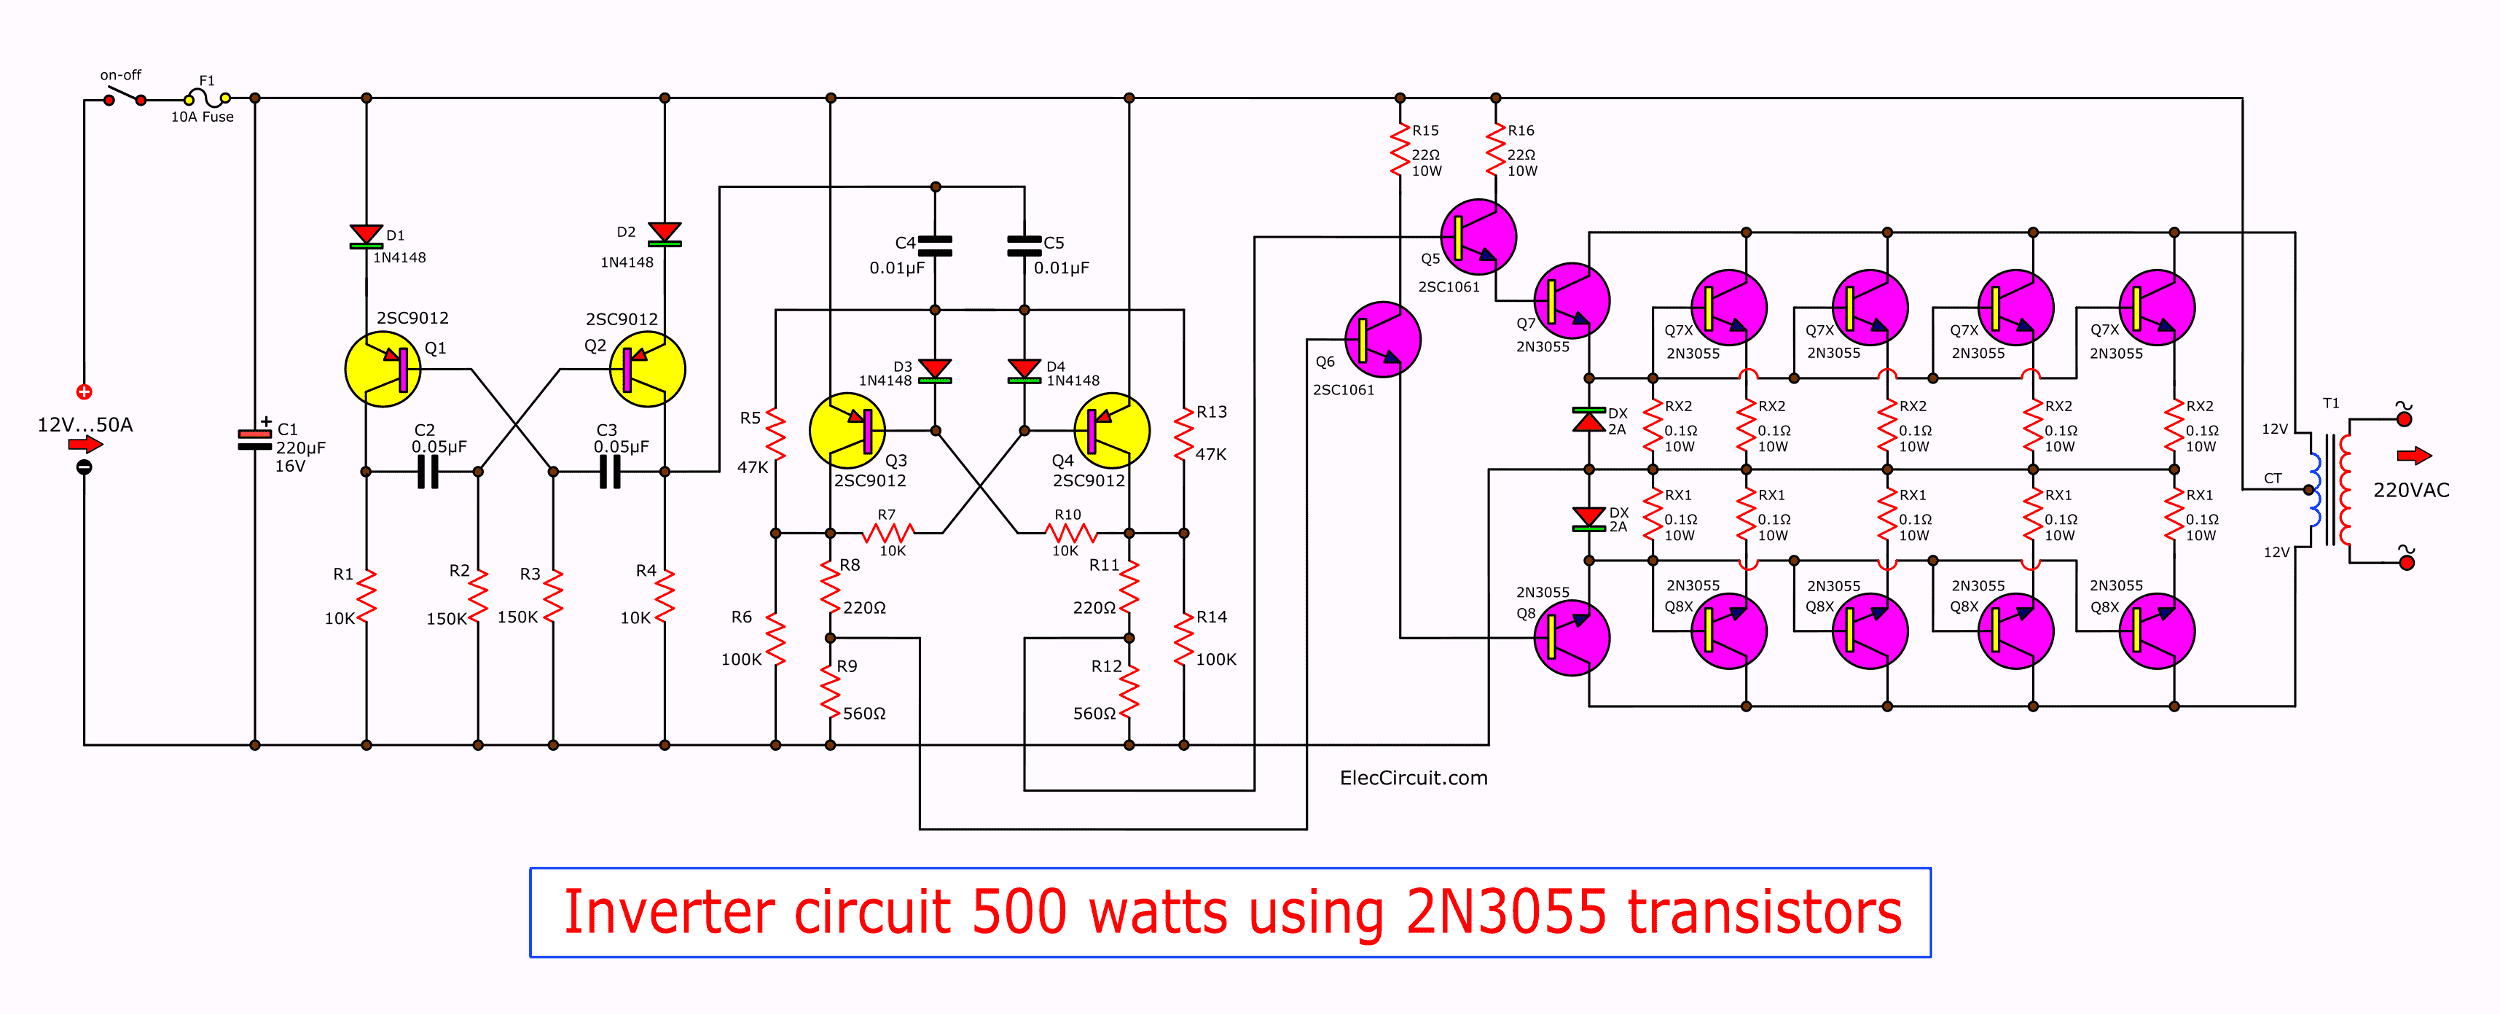 5000 watts amplifier schematic diagrams inverter circuit 500w  12v to 220v eleccircuit com  inverter circuit 500w  12v to 220v